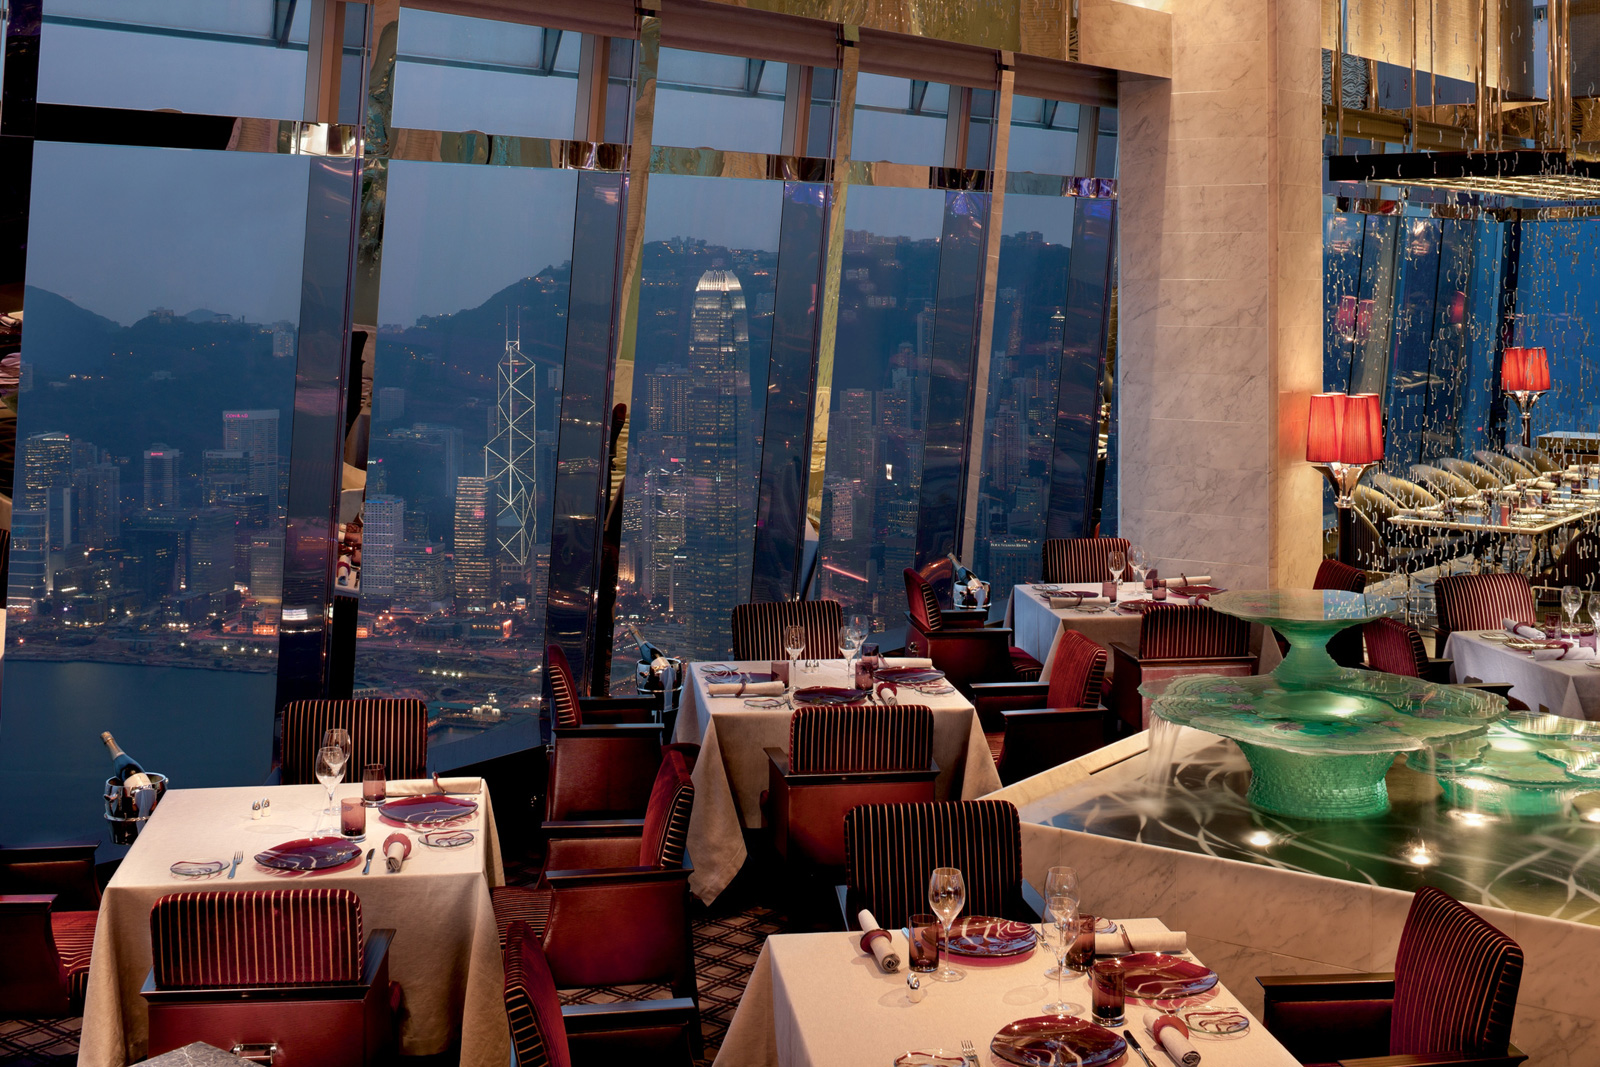 world 39 s highest hotel ritz carlton in hong kong opened its doors to guests extravaganzi. Black Bedroom Furniture Sets. Home Design Ideas